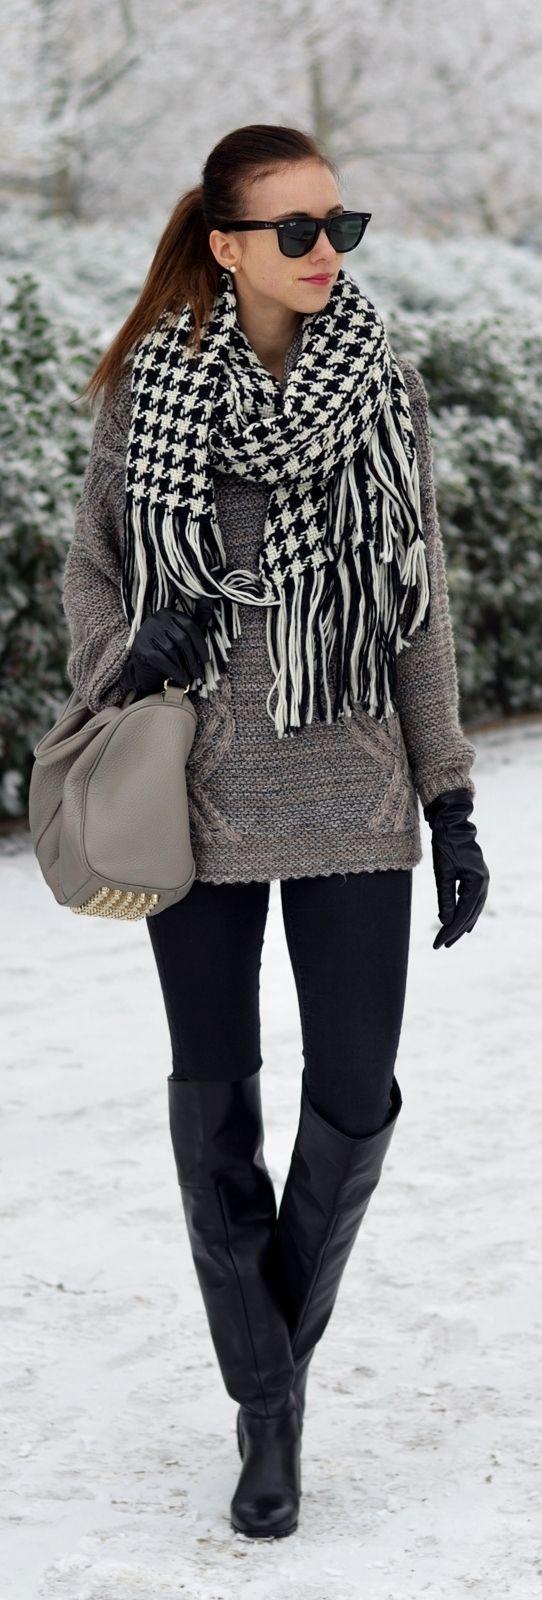 winter outfit. Oversized/ chunky grey sweater. Black leggings. Houndstooth scarf. Black tall boots. Love this fall outfit